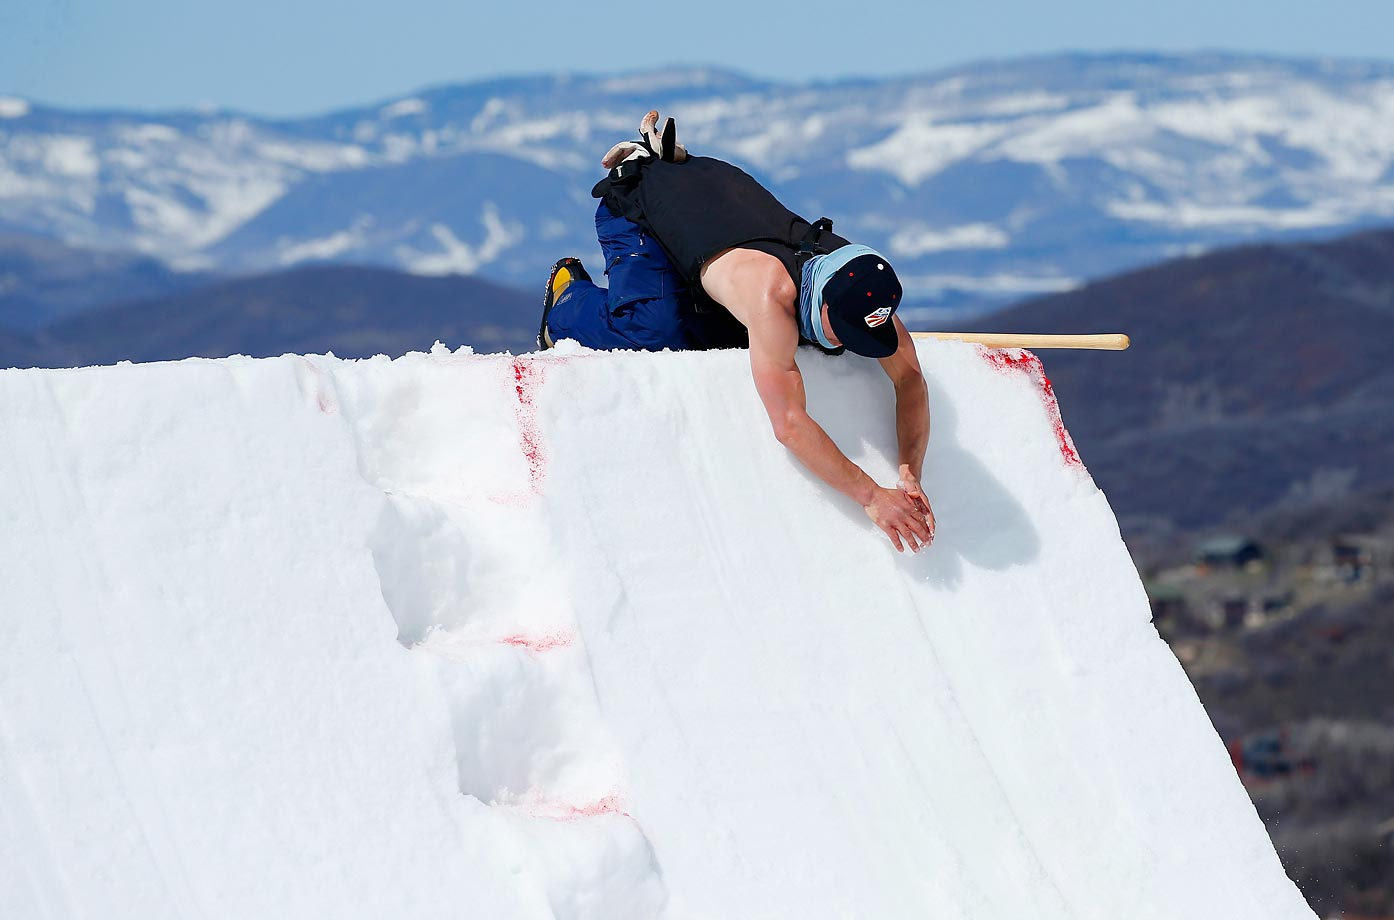 A course worker makes finishing touches as warm weather greets the aerials competition at the 2015 U.S. Freestyle Ski National Championships at Steamboat Ski Resort.